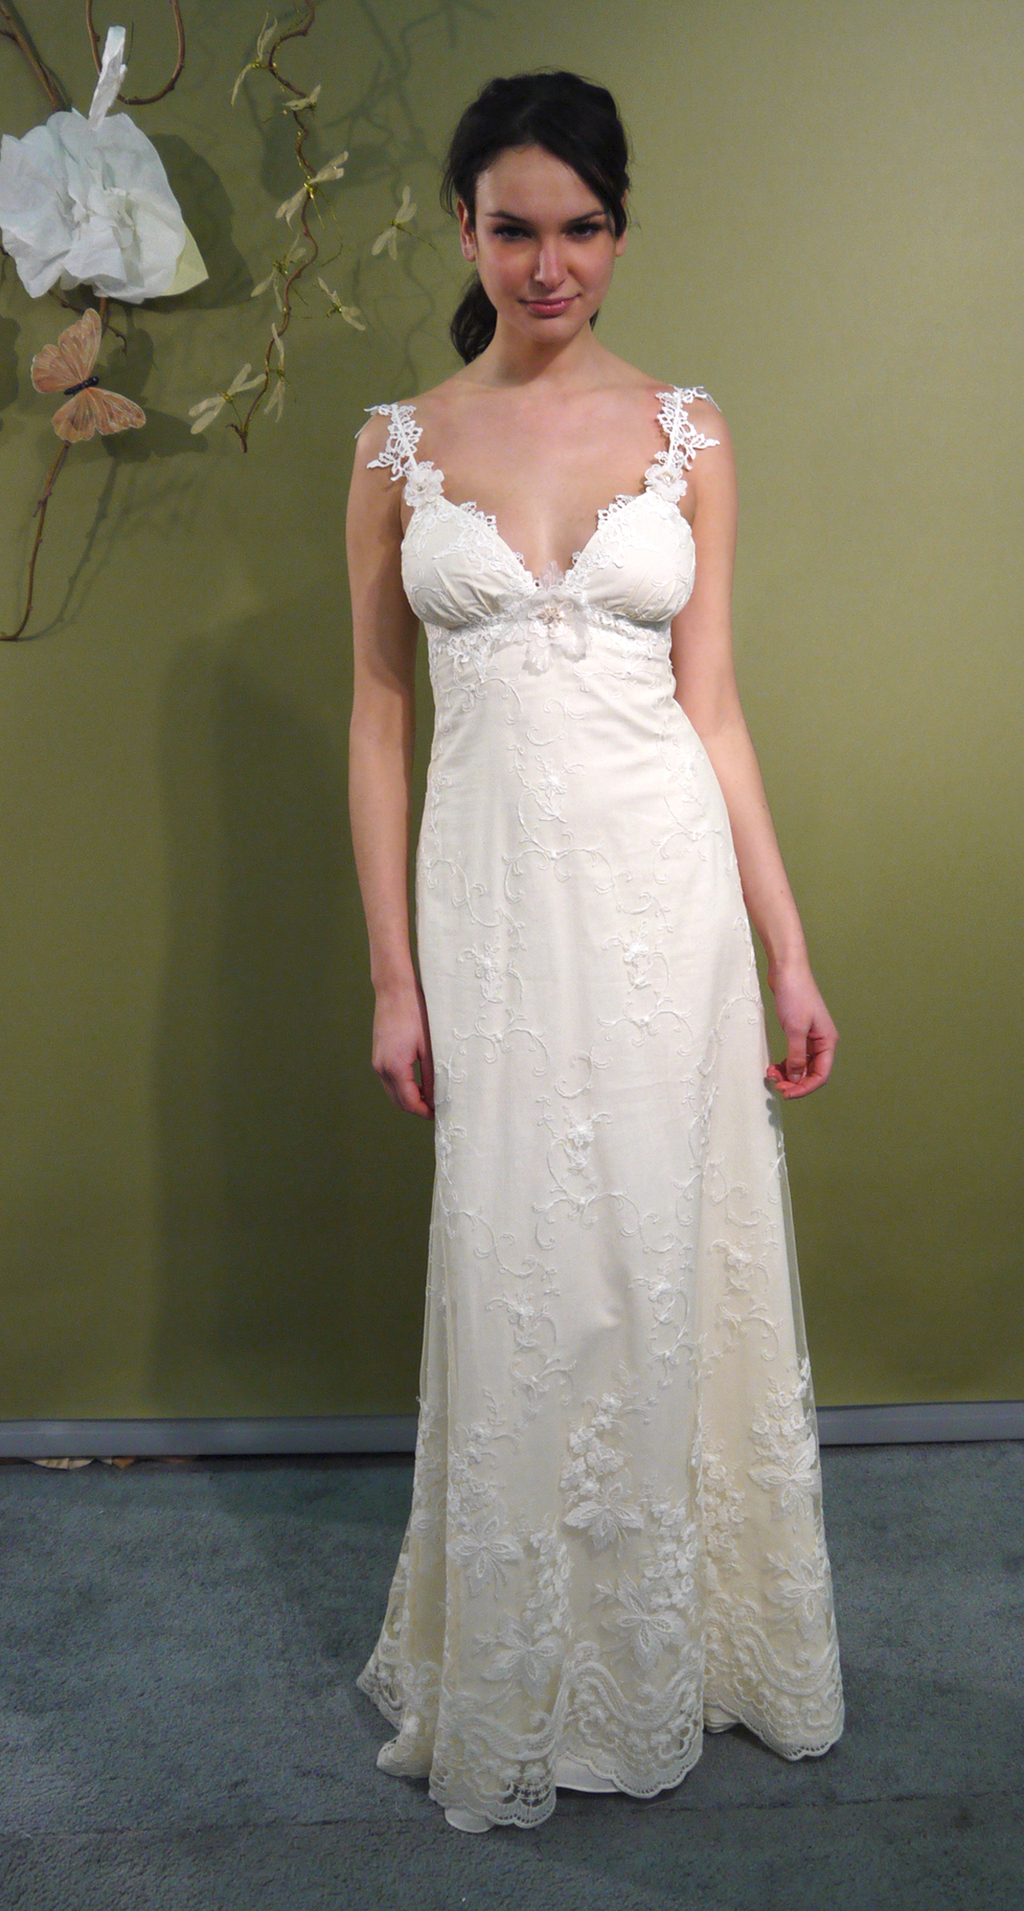 Fall-2011-wedding-dress-constance-ivory-bridal-gown-claire-pettibone.full